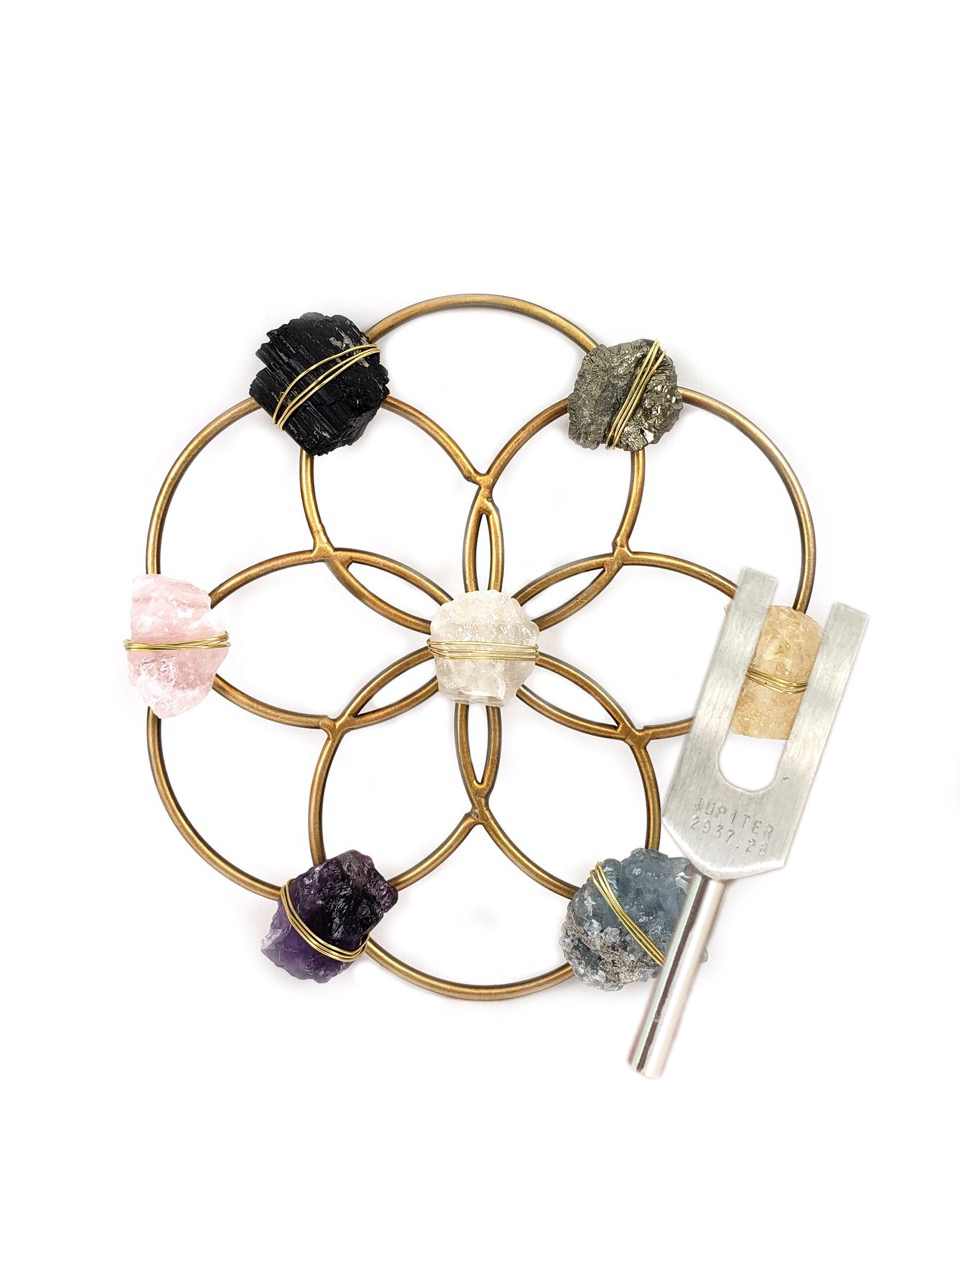 sound healing crystal grid